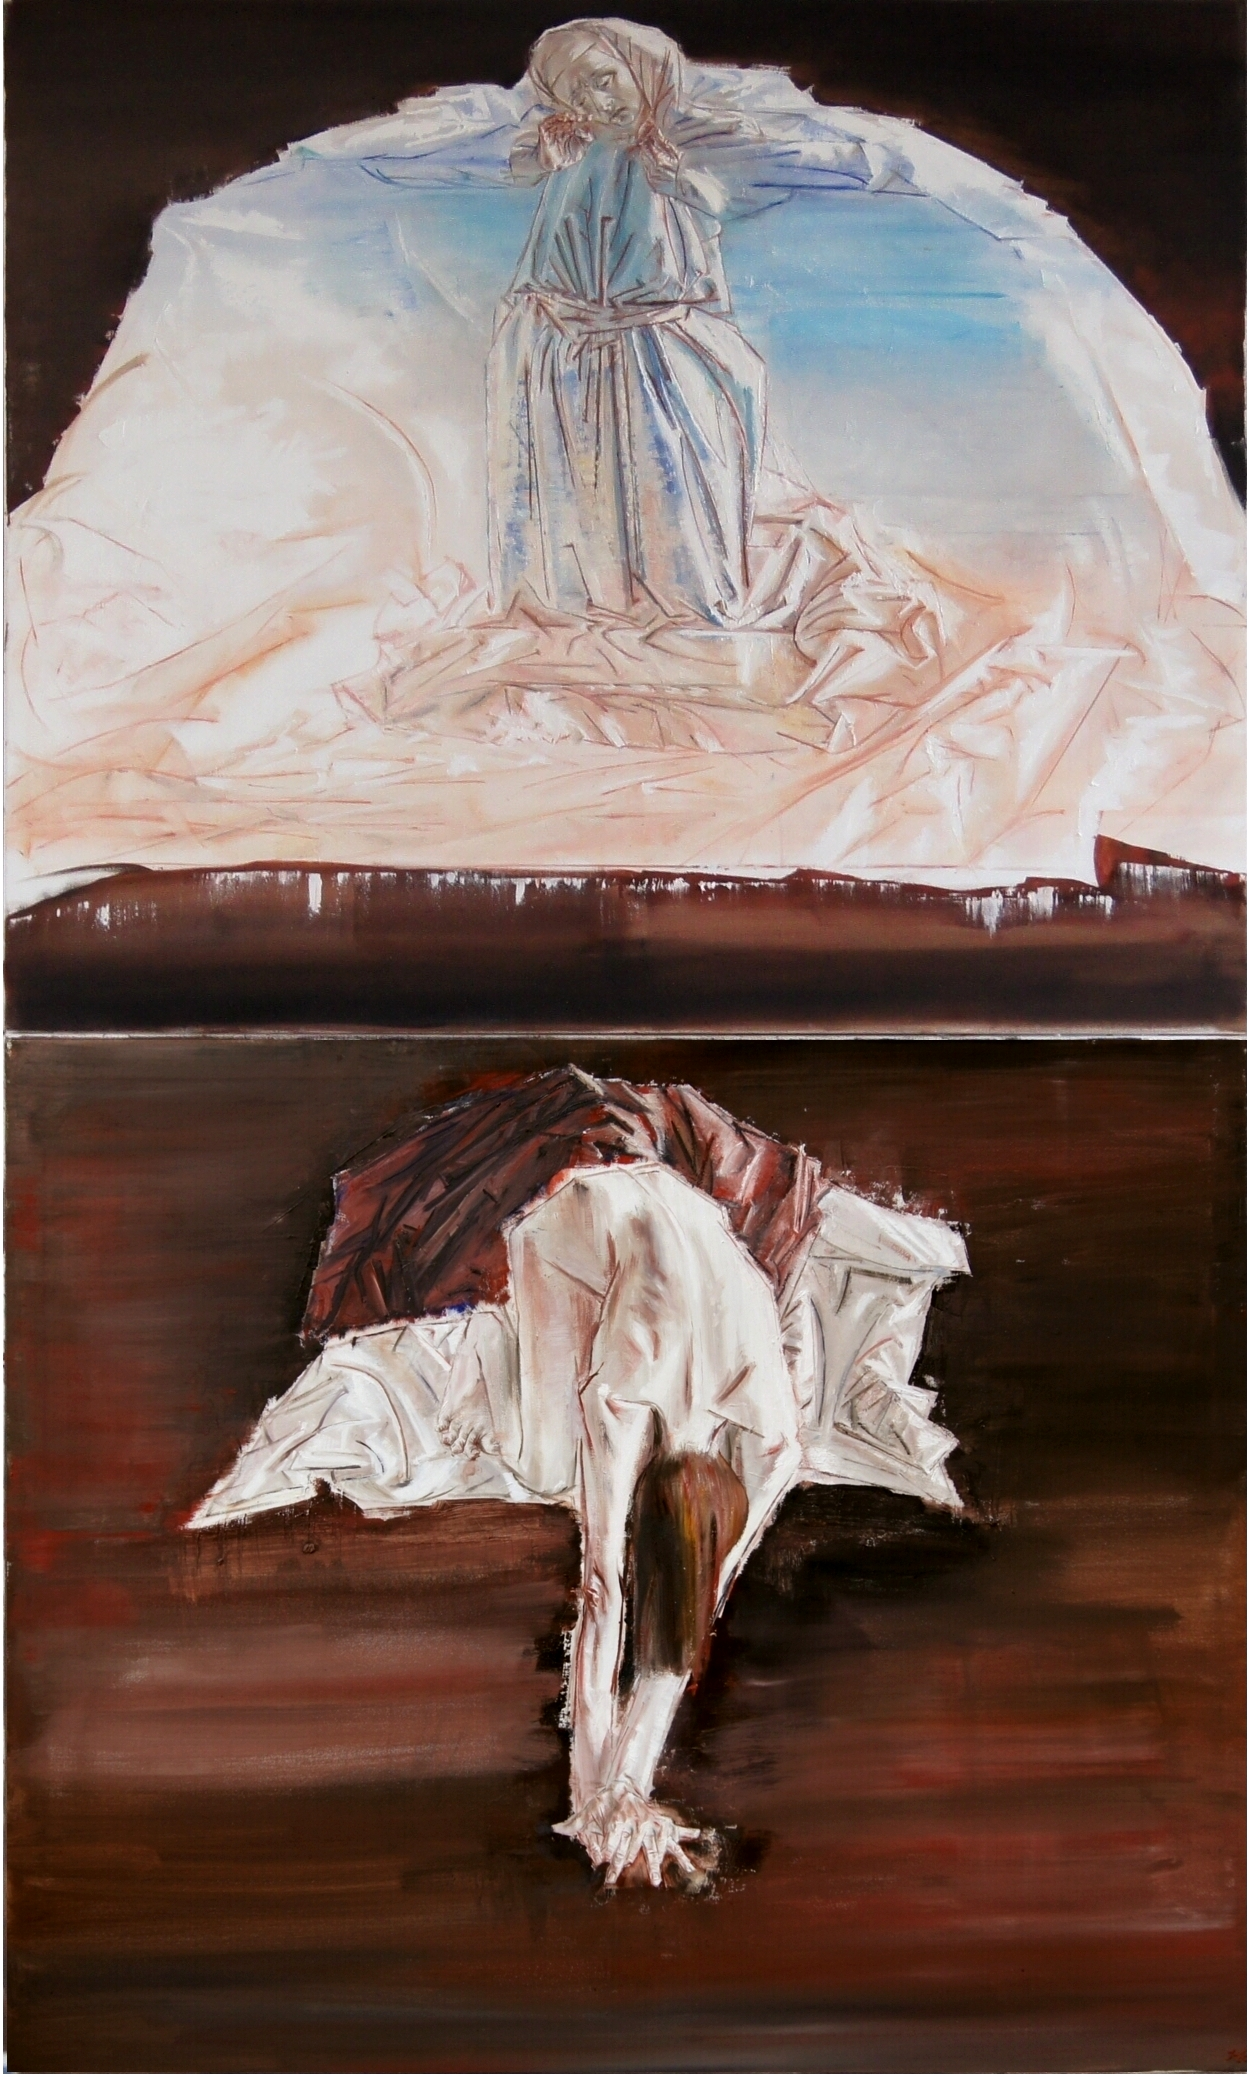 Pain, Diptych, oil on canvas, je 100x120cm, 2014